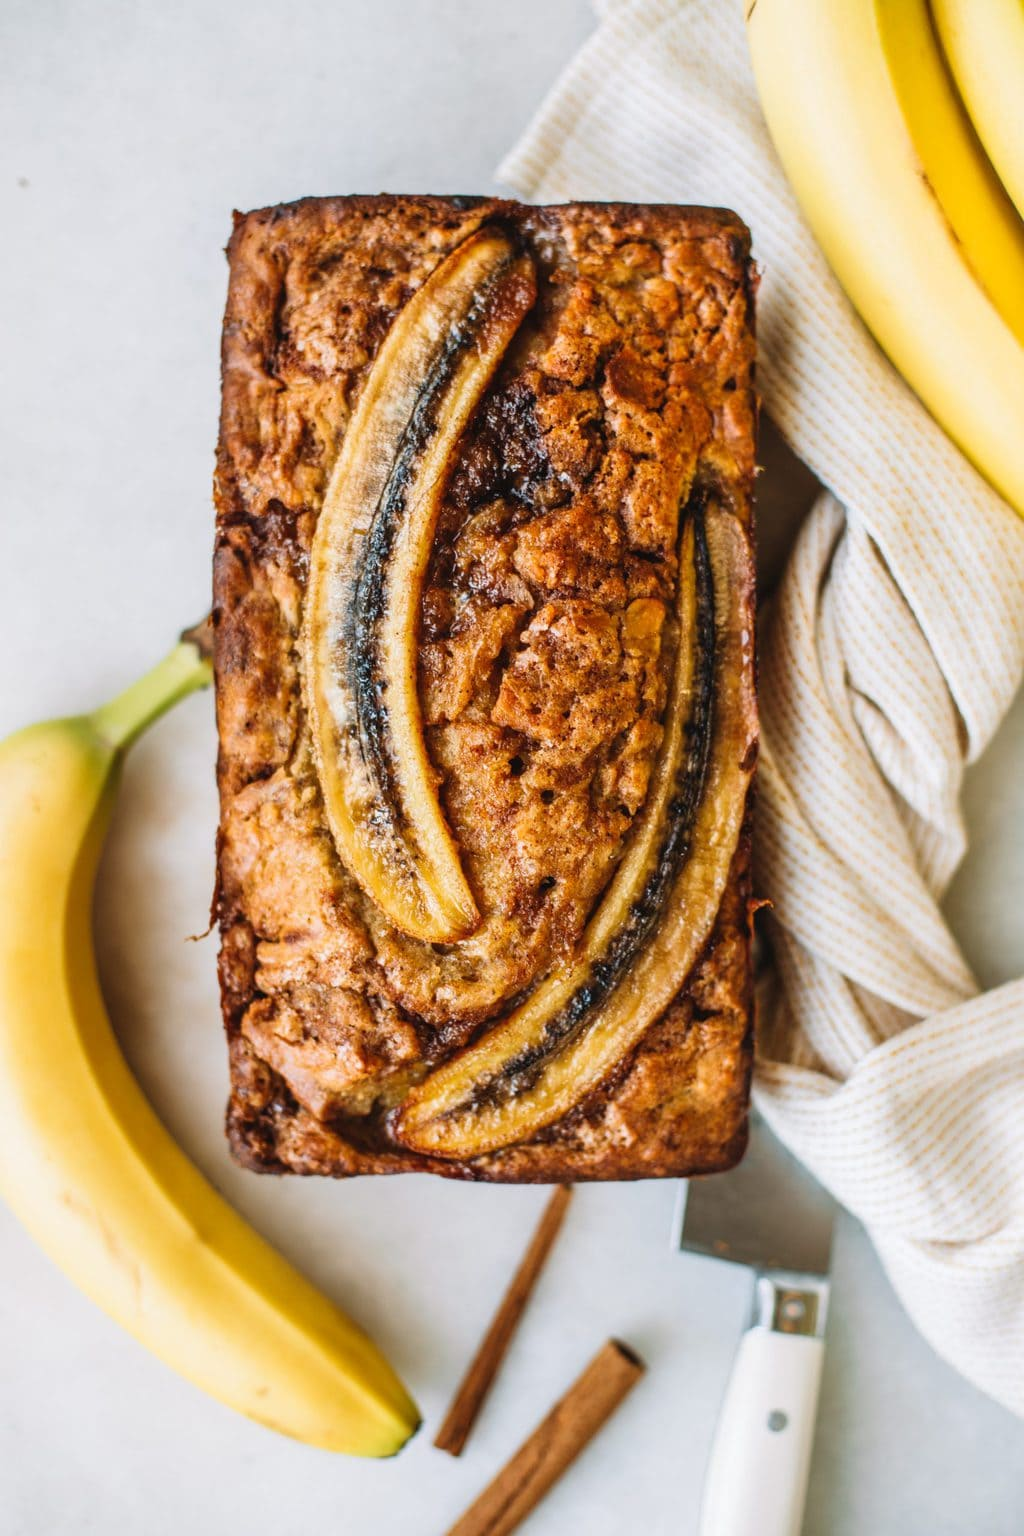 Cinnamon banana bread baked and topped with two sliced bananas.